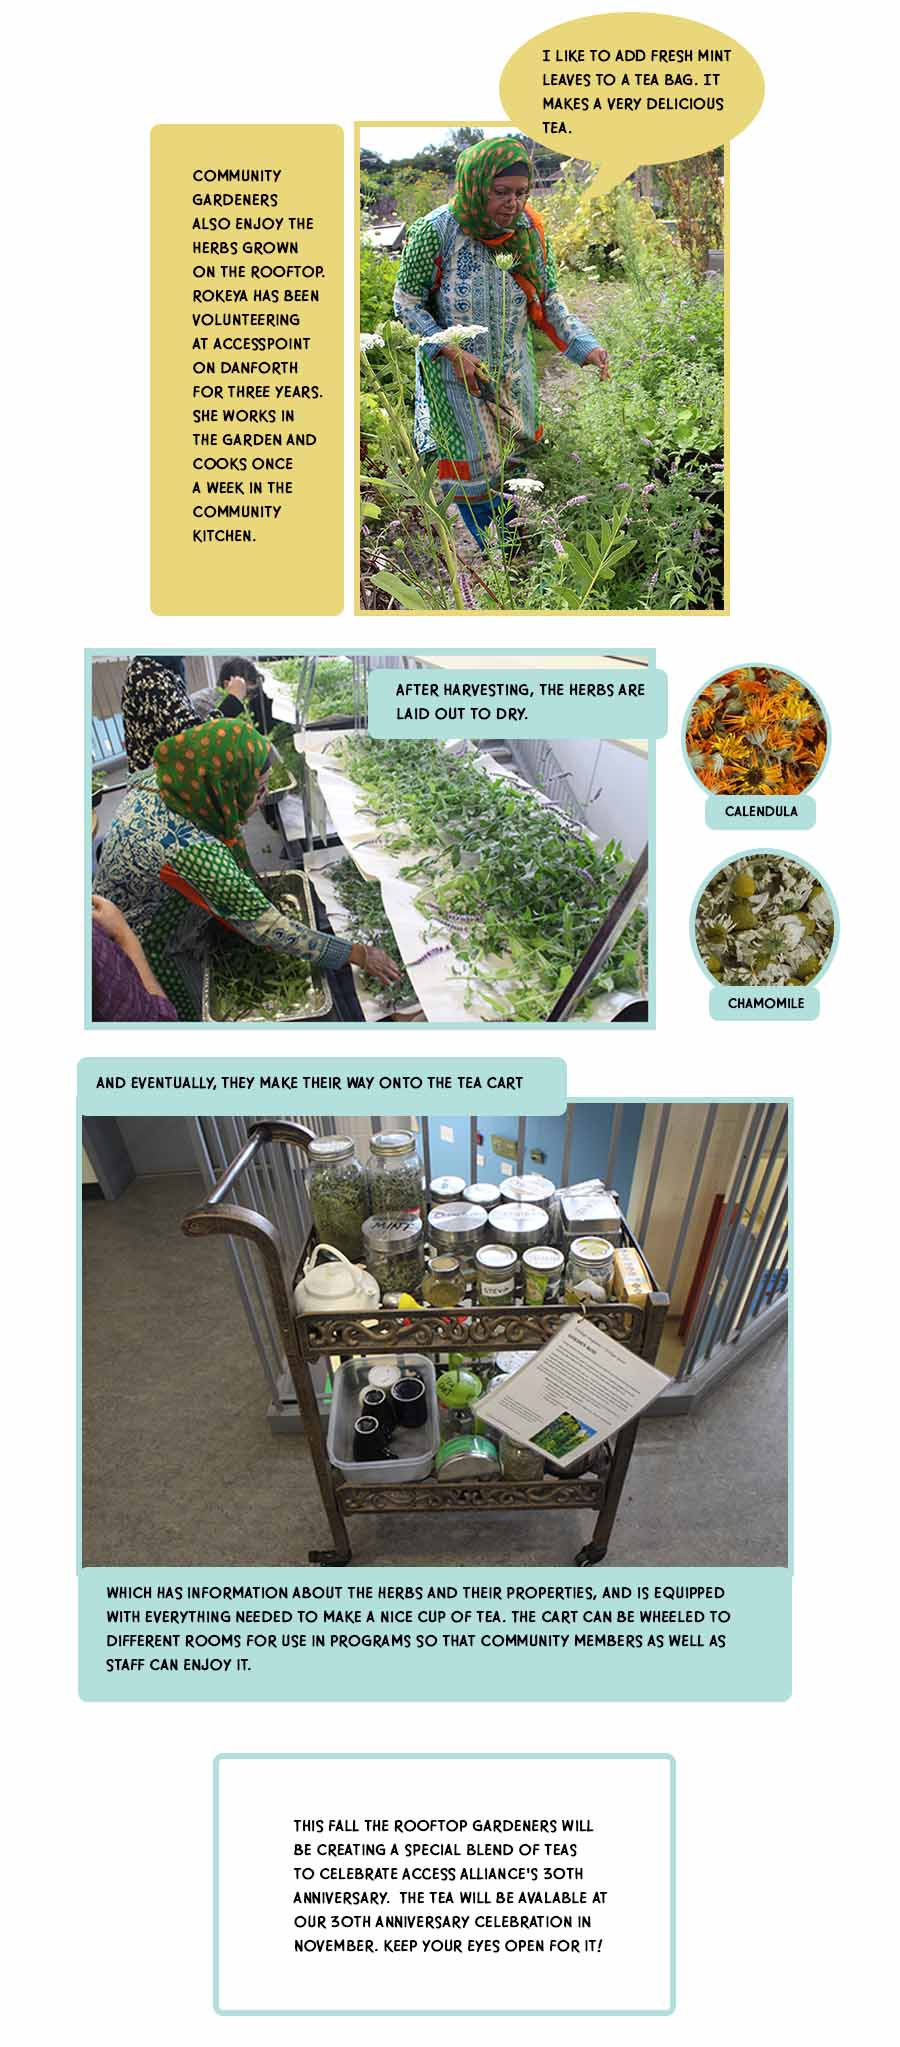 Photo story about harvesting and drying the herbs and using them on the Access Alliance staff tea cart.